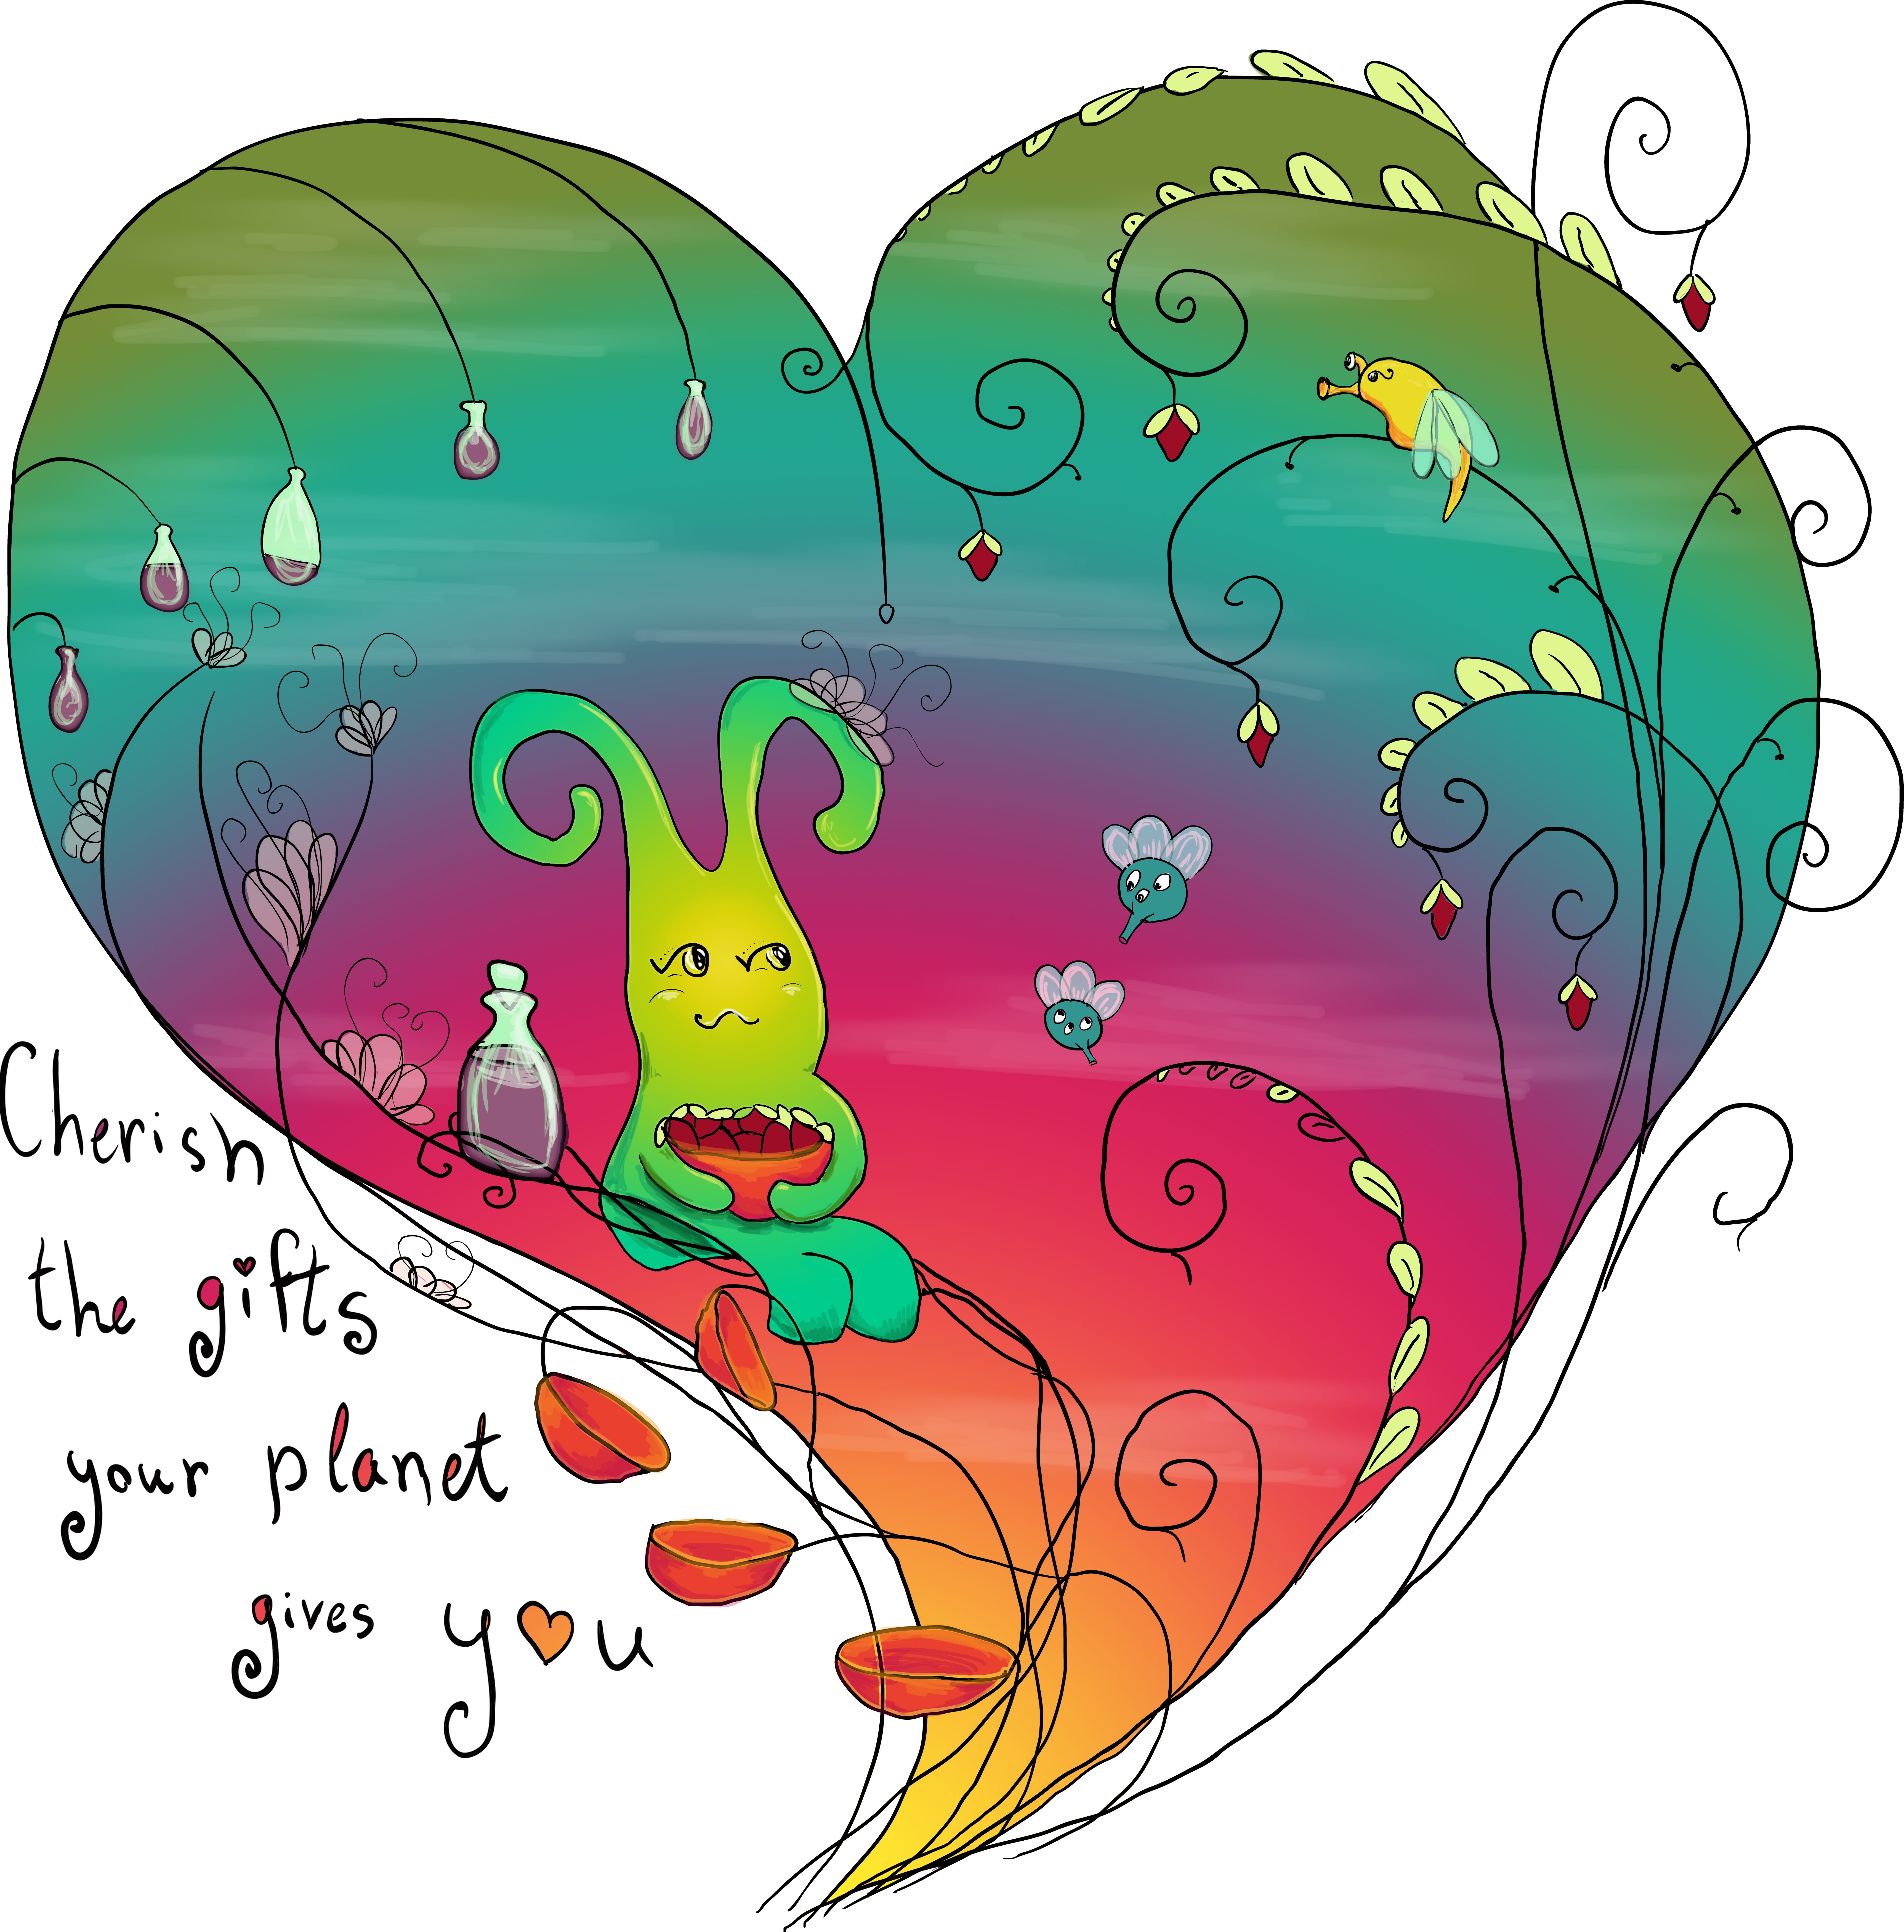 Cherish the gifts your planet gives you